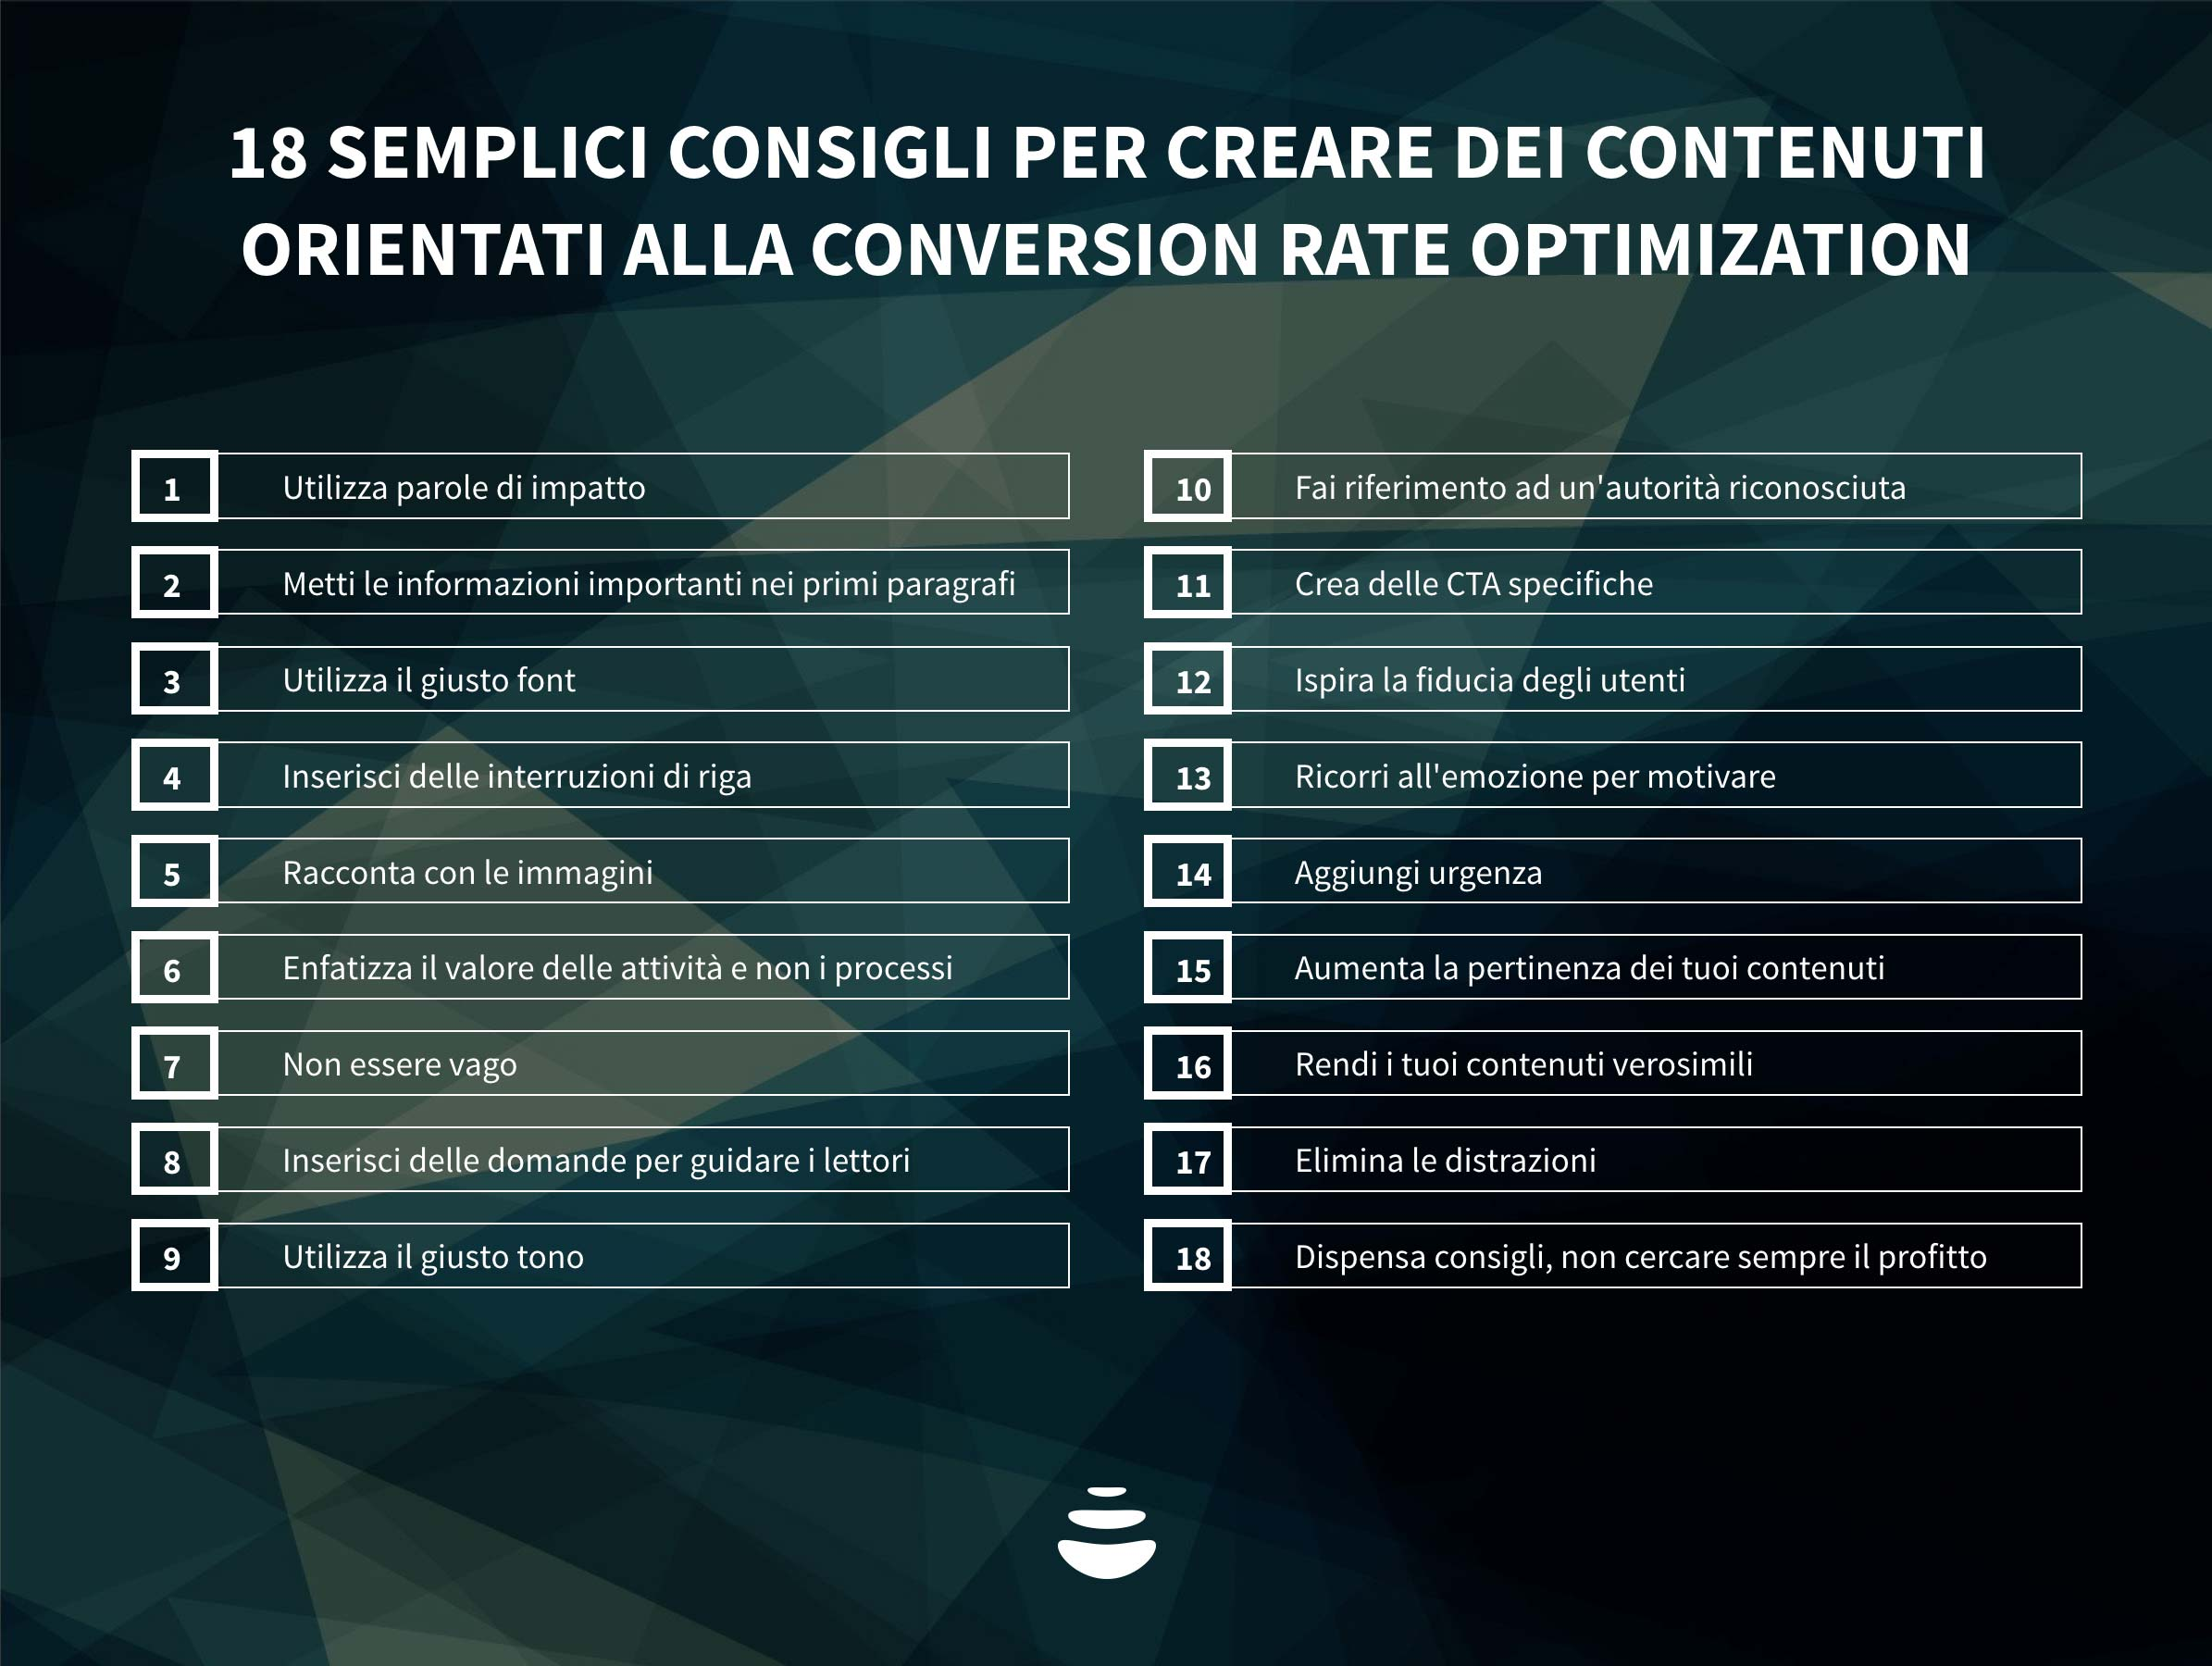 conversion rate optimization e content marketing